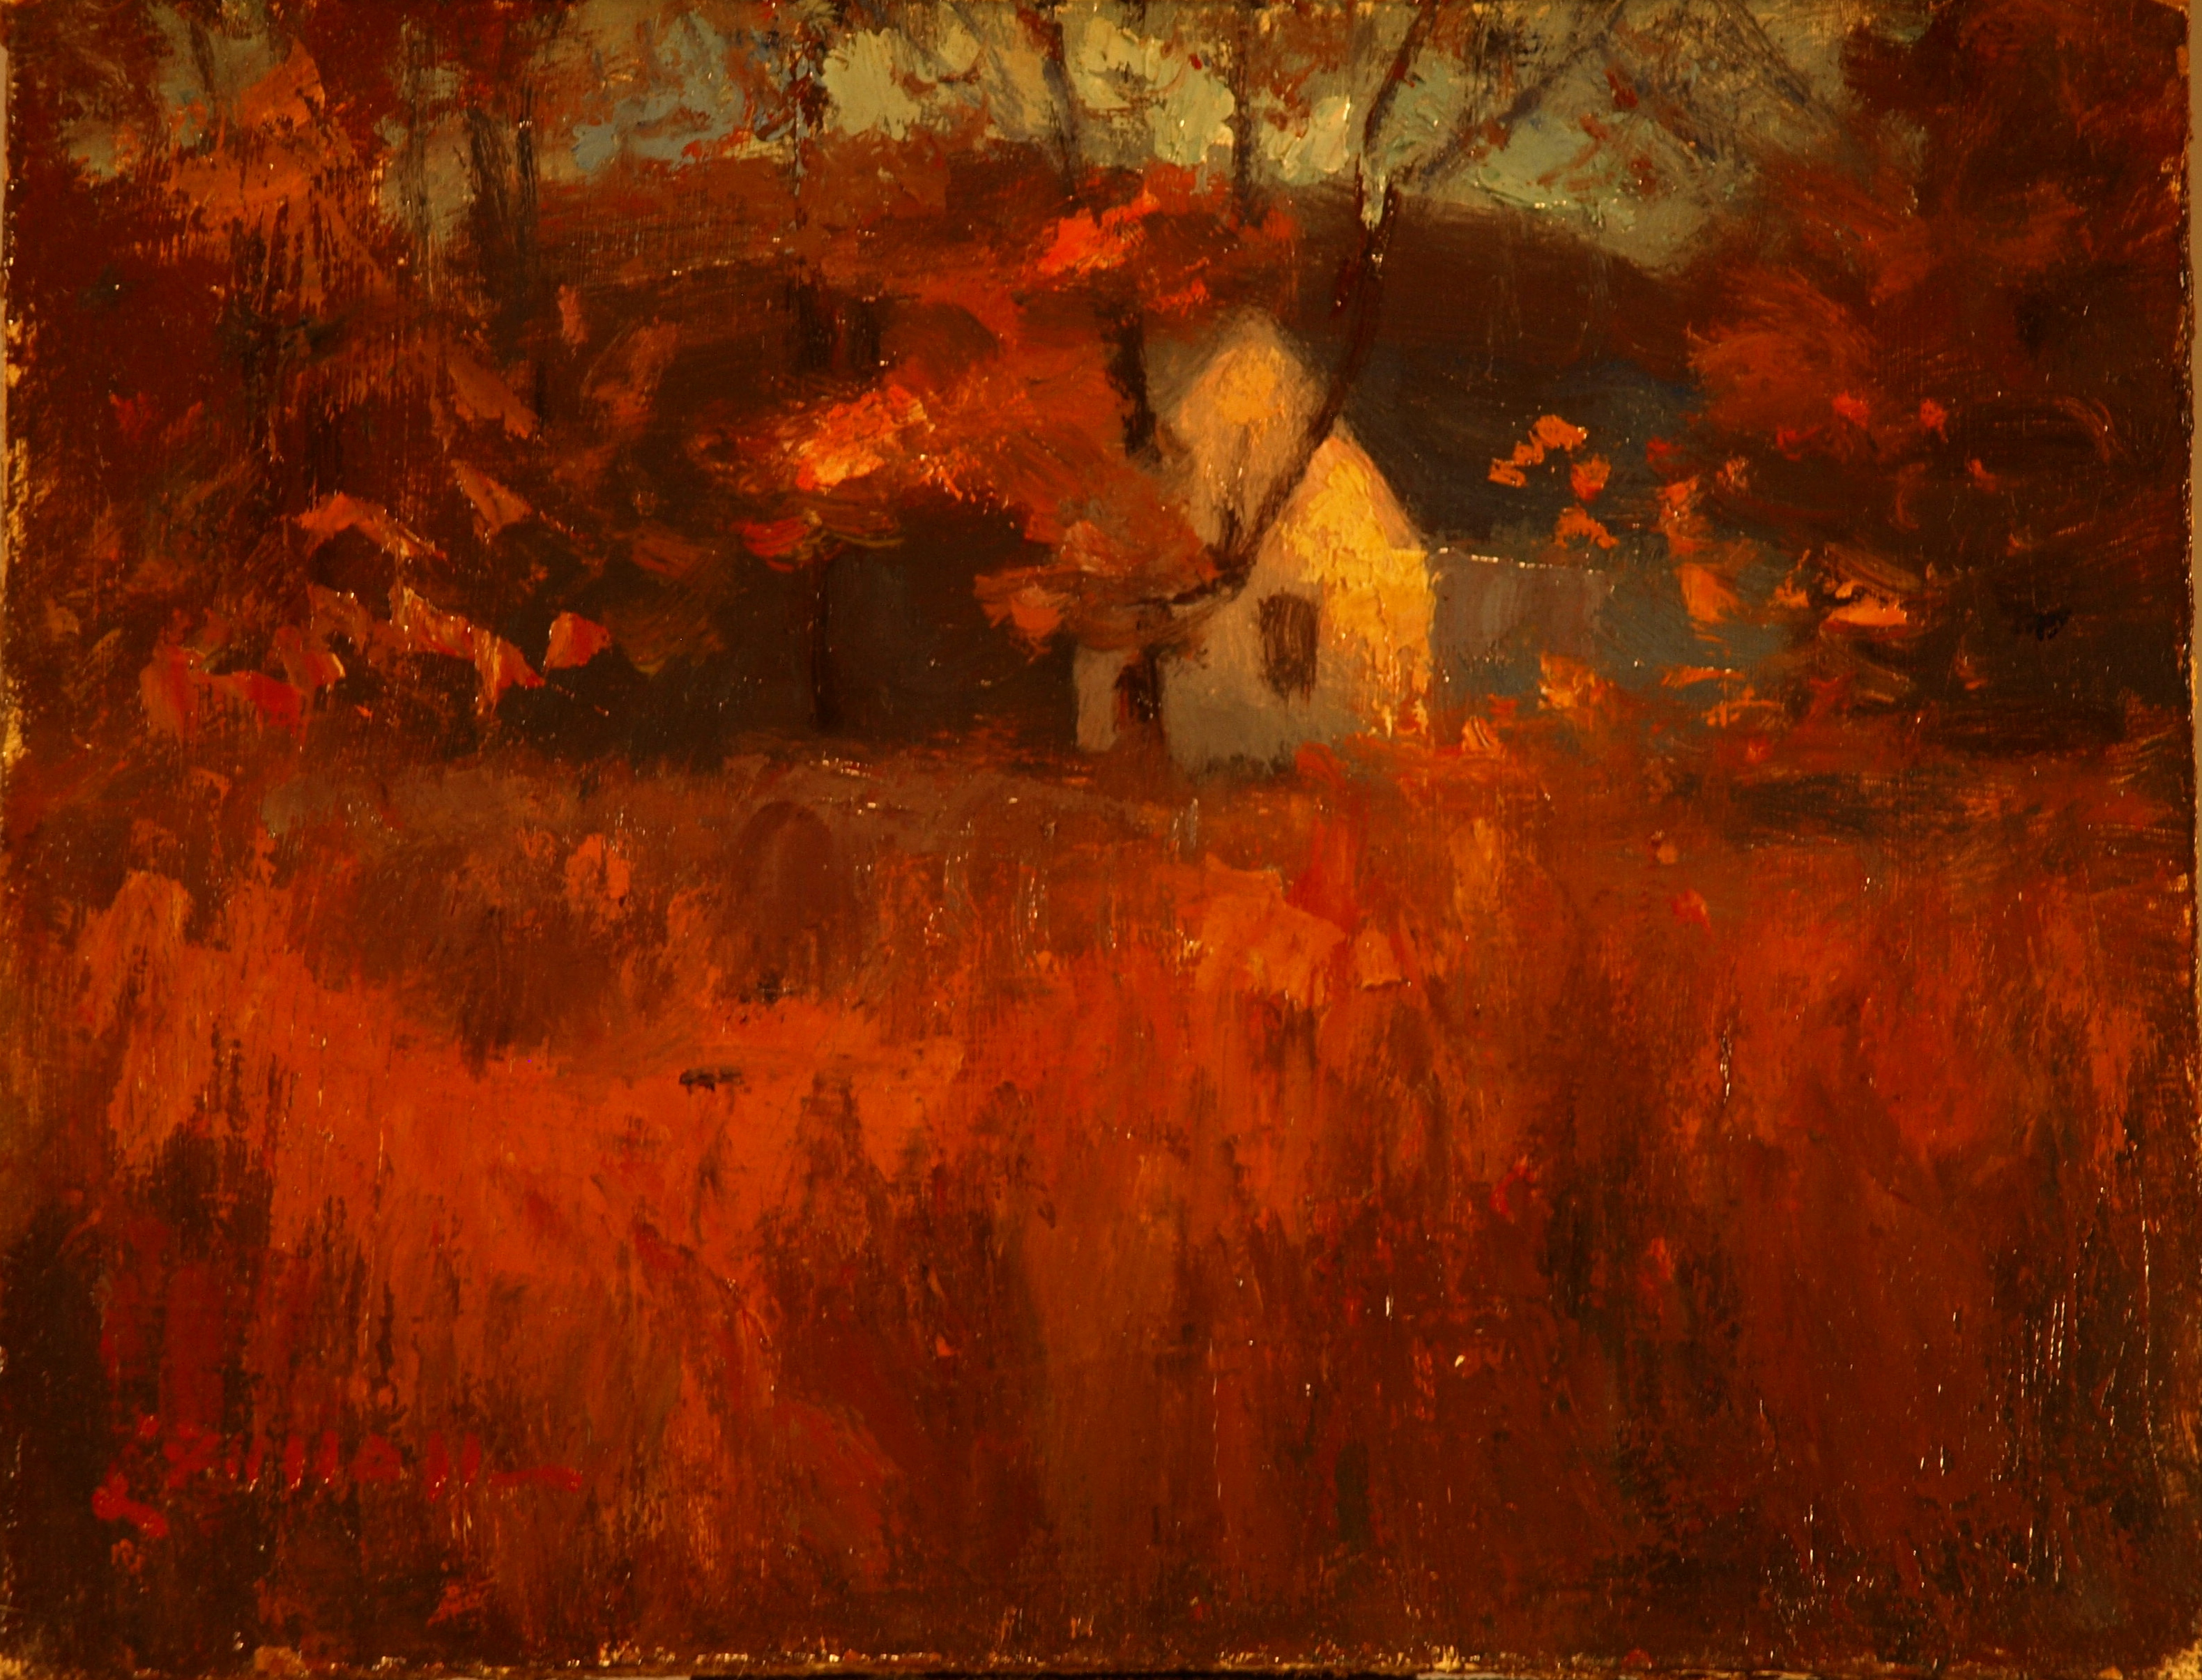 Red Grasses, Oil on Panel, 6 x 8 Inches, by Bernard Lennon, $125